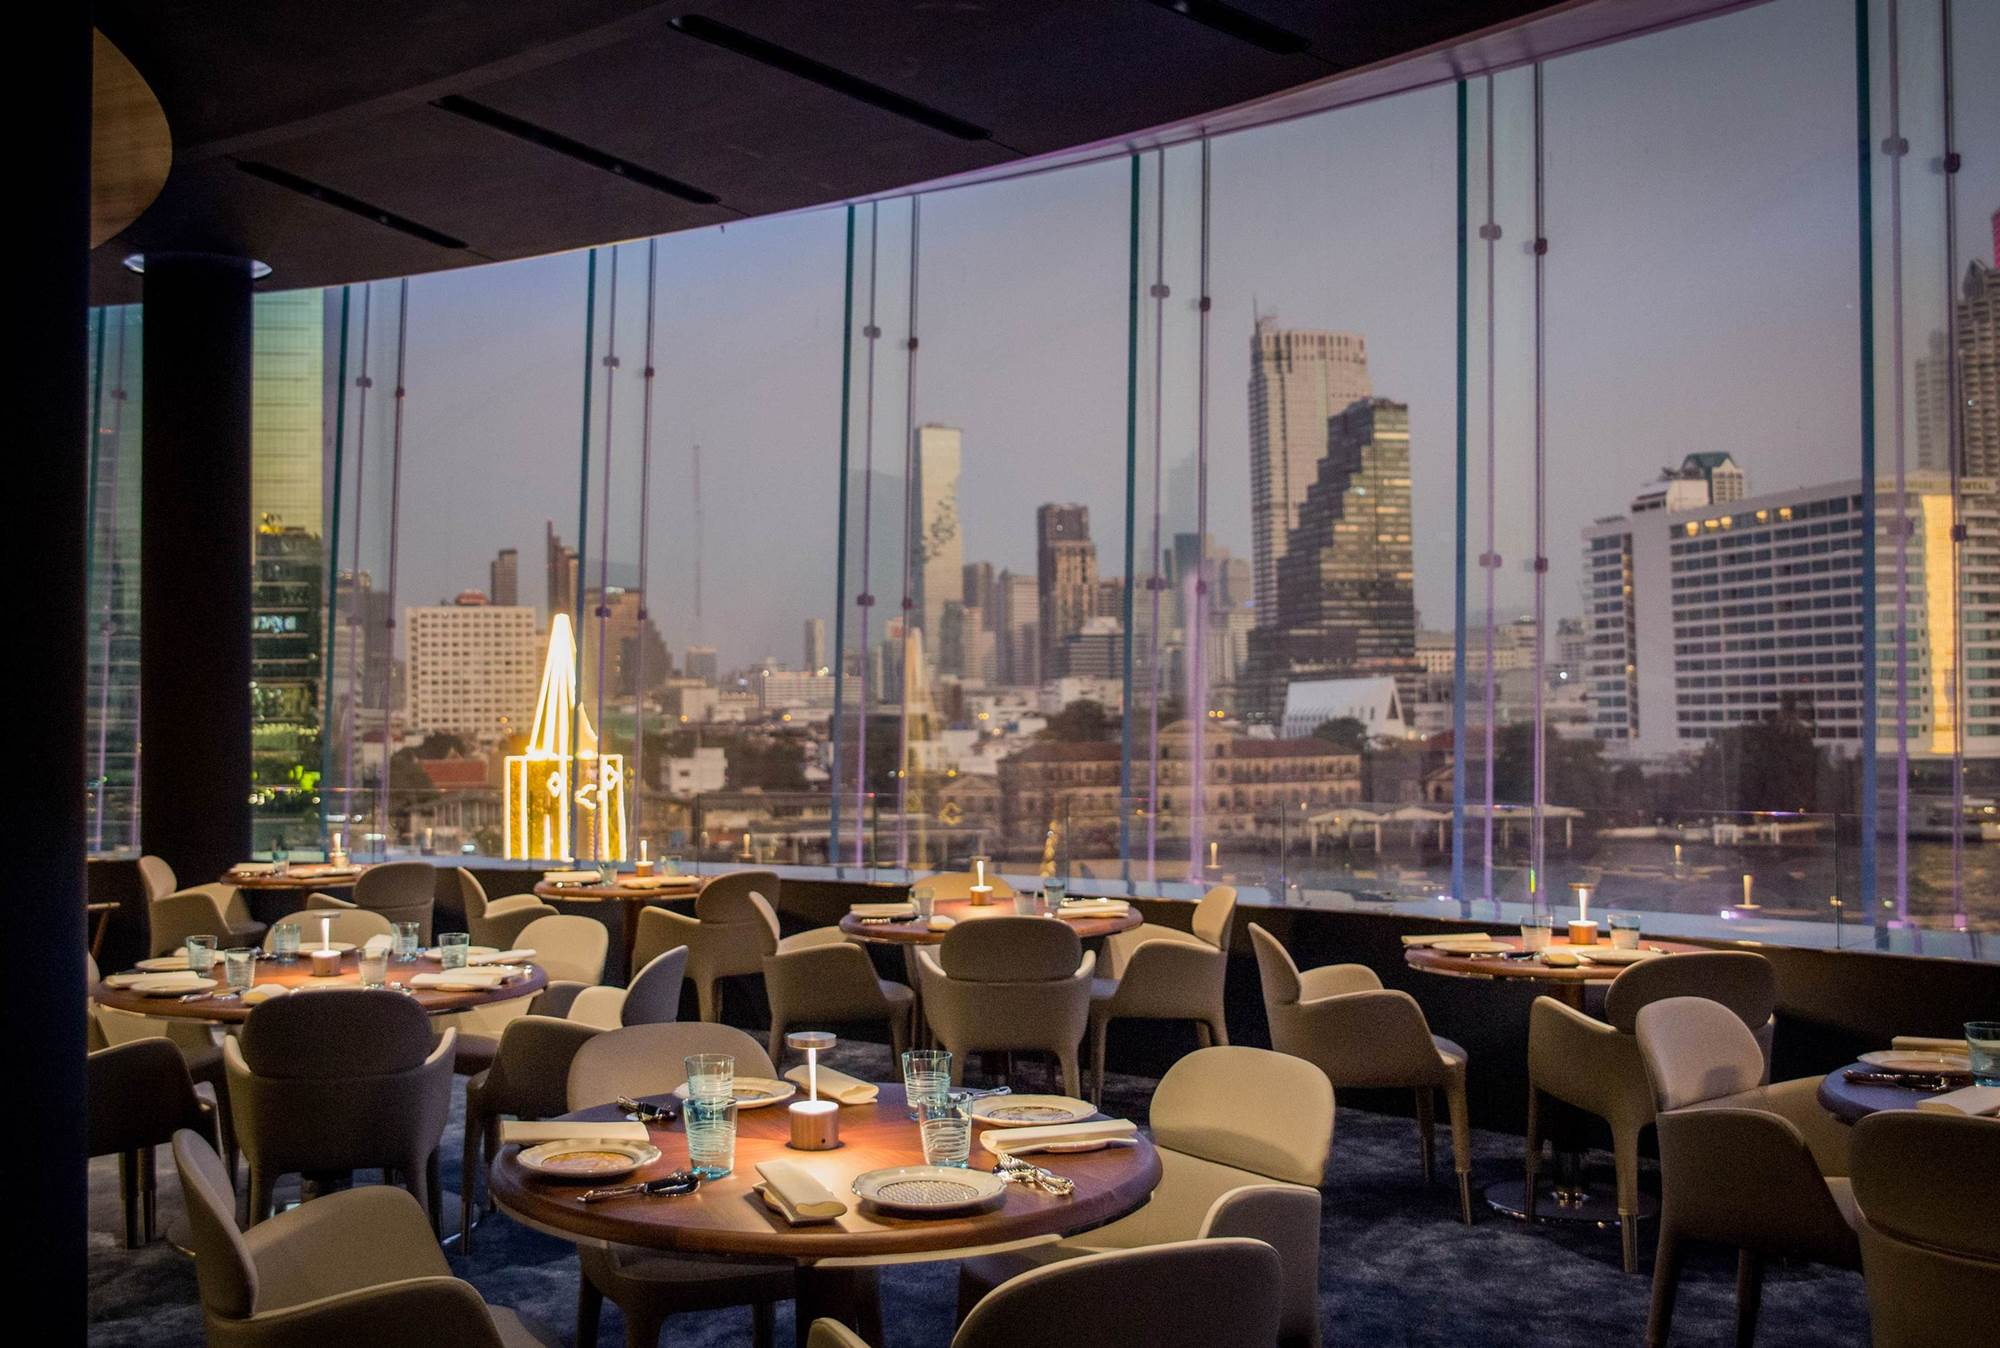 Alain Ducasse On the Future of Food and Opening his First Restaurant in Bangkok